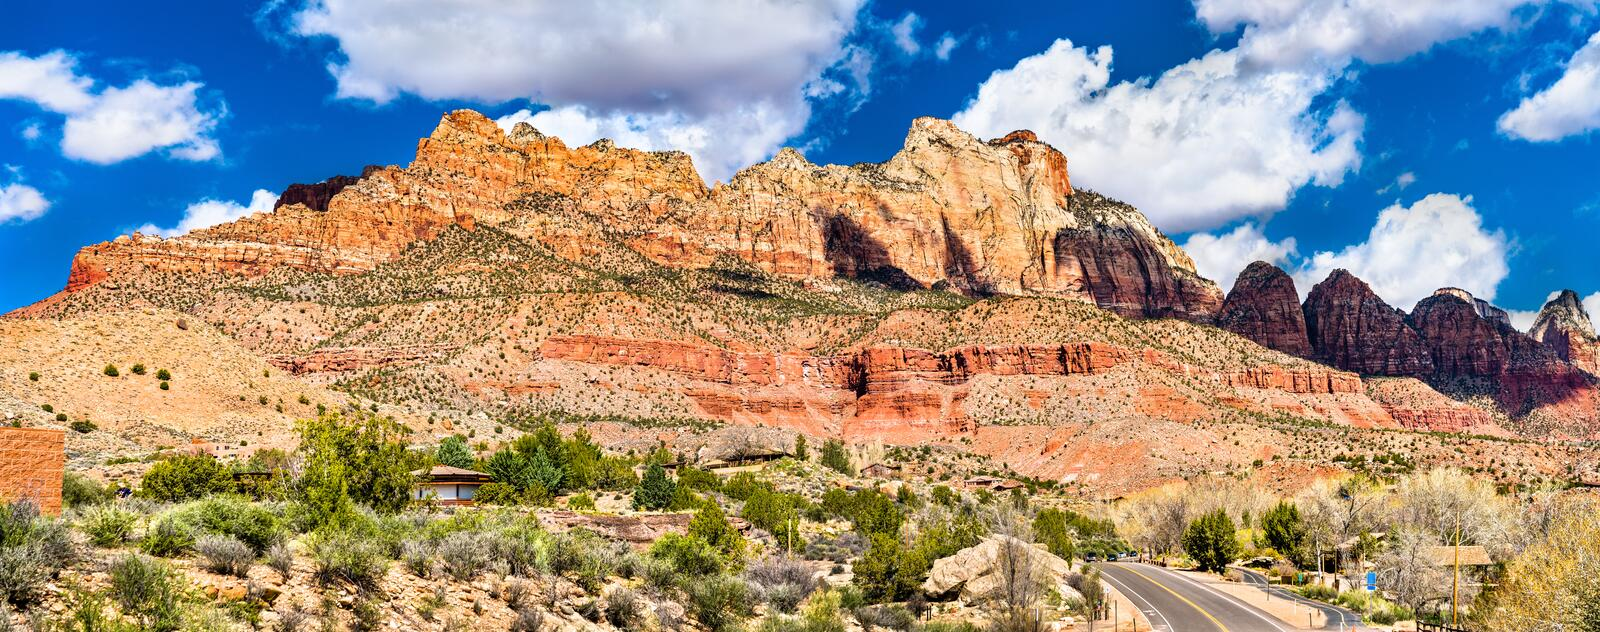 Panorama of Zion National Park at Springdale, Utah. Panorama of Zion National Park at Springdale - Utah, United States royalty free stock images